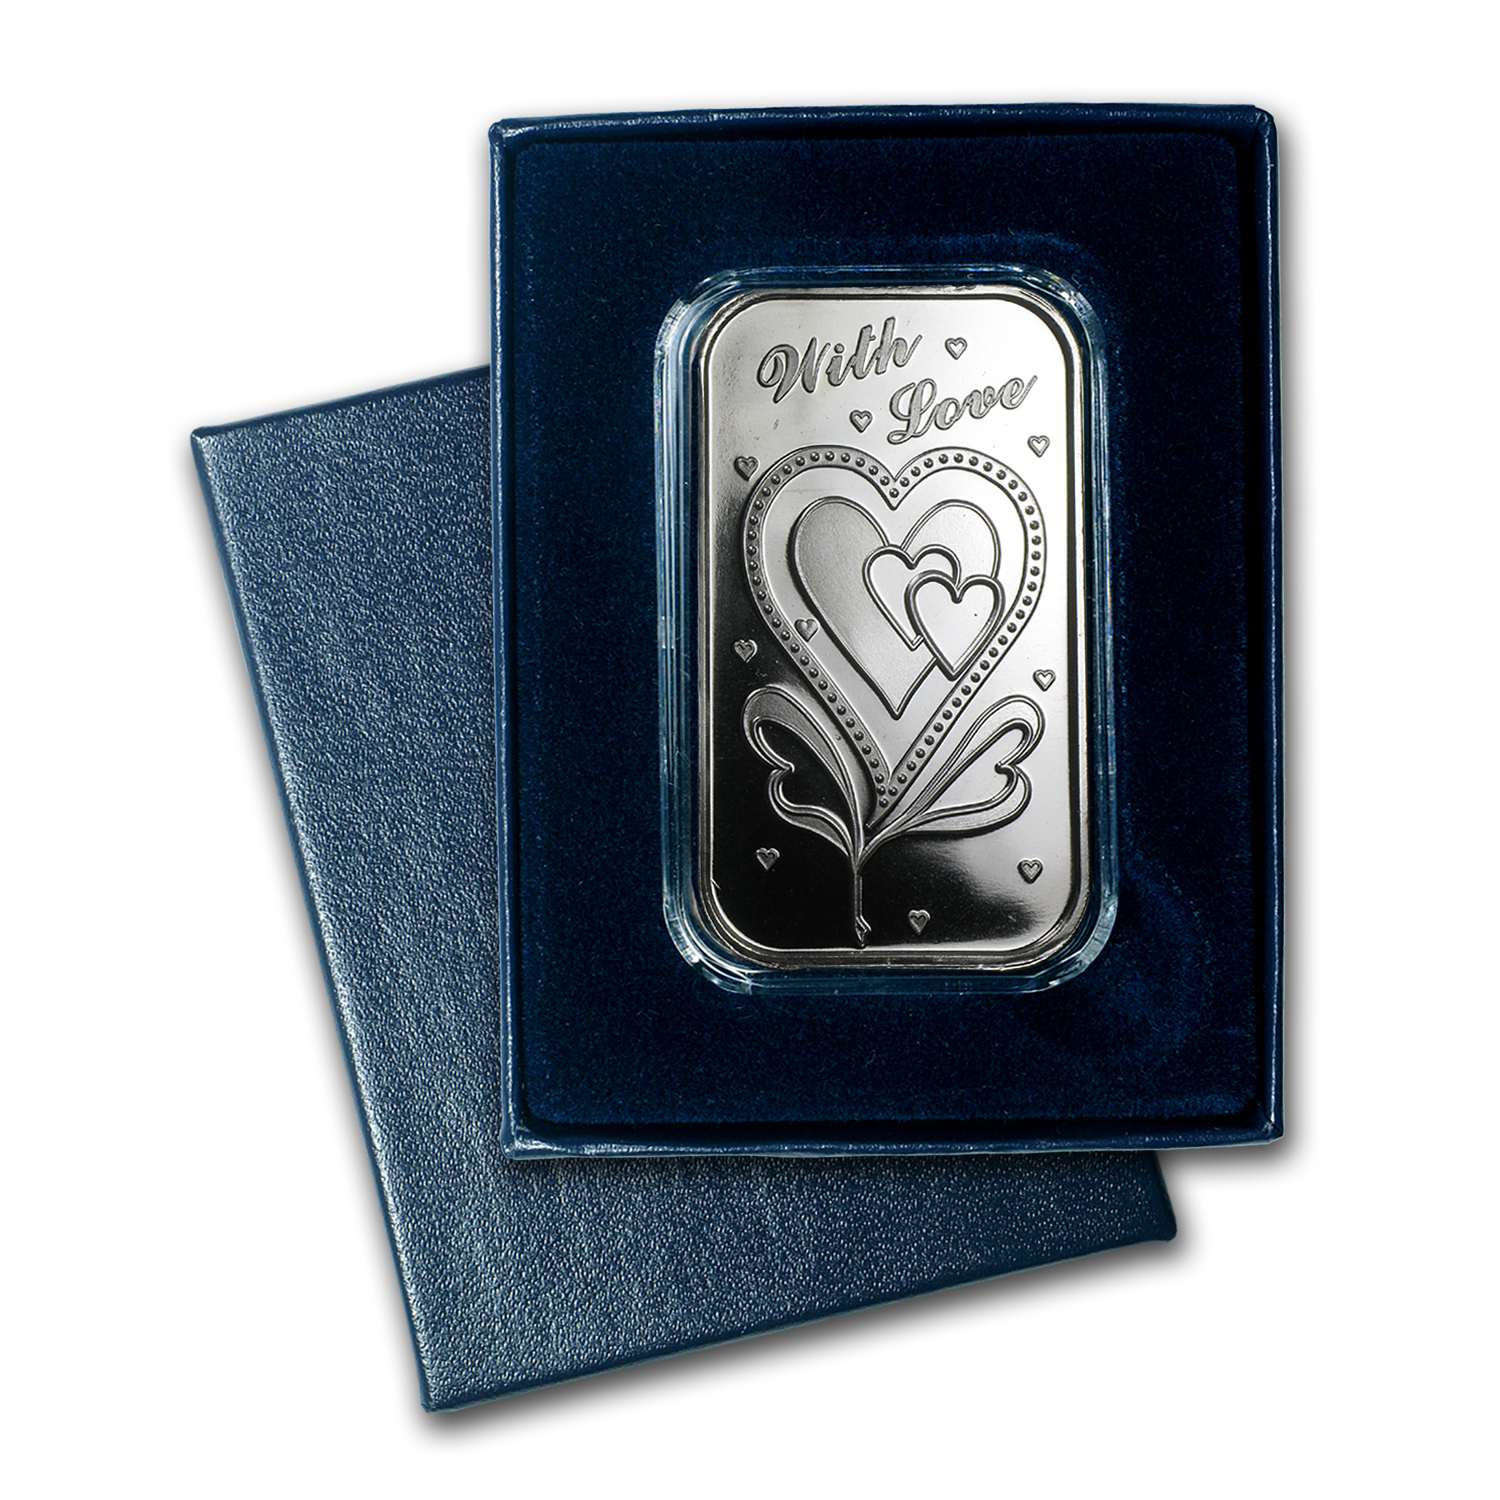 1 Oz Silver Bar With Love W Box Amp Capsule 1 Oz